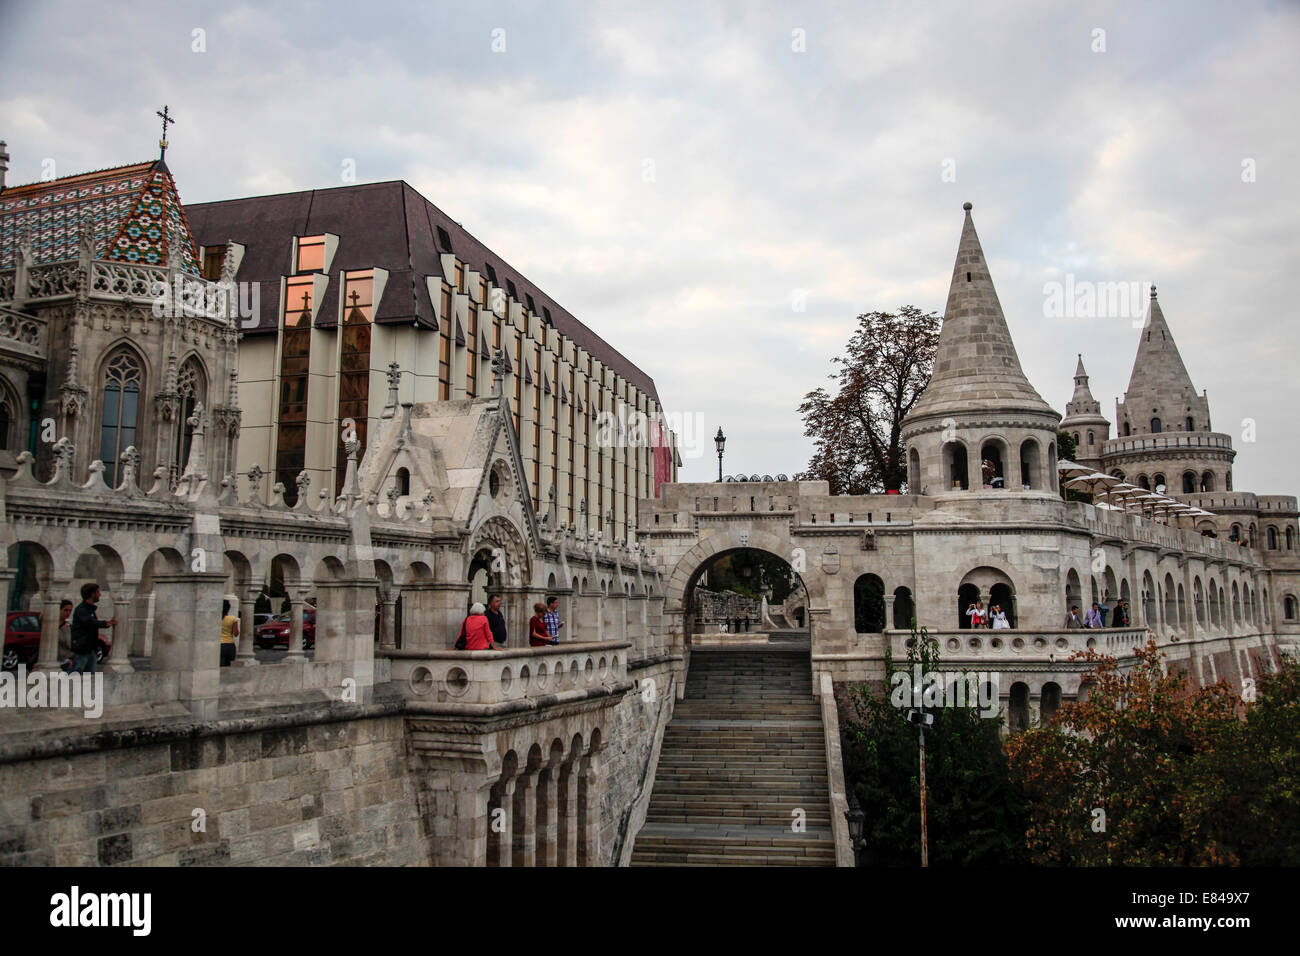 Fishermans Bastion and Church of Our Lady or Matthias Church Castle District, Budapest Hungary - Stock Image